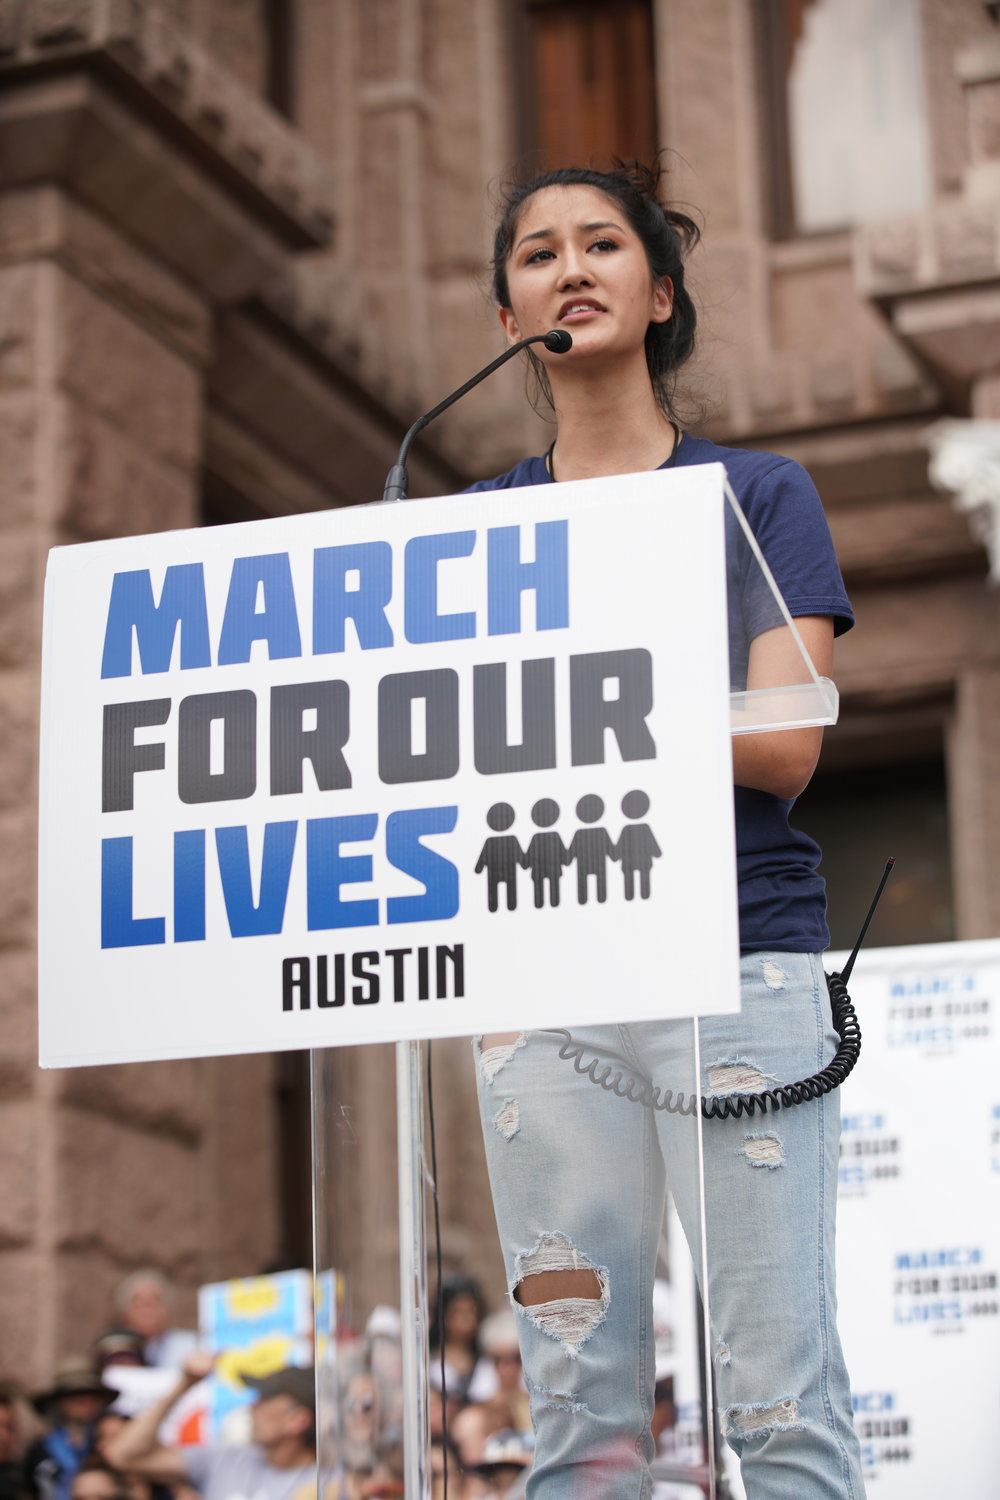 March For Our Lives Austin - Photo by Ali Hajipour